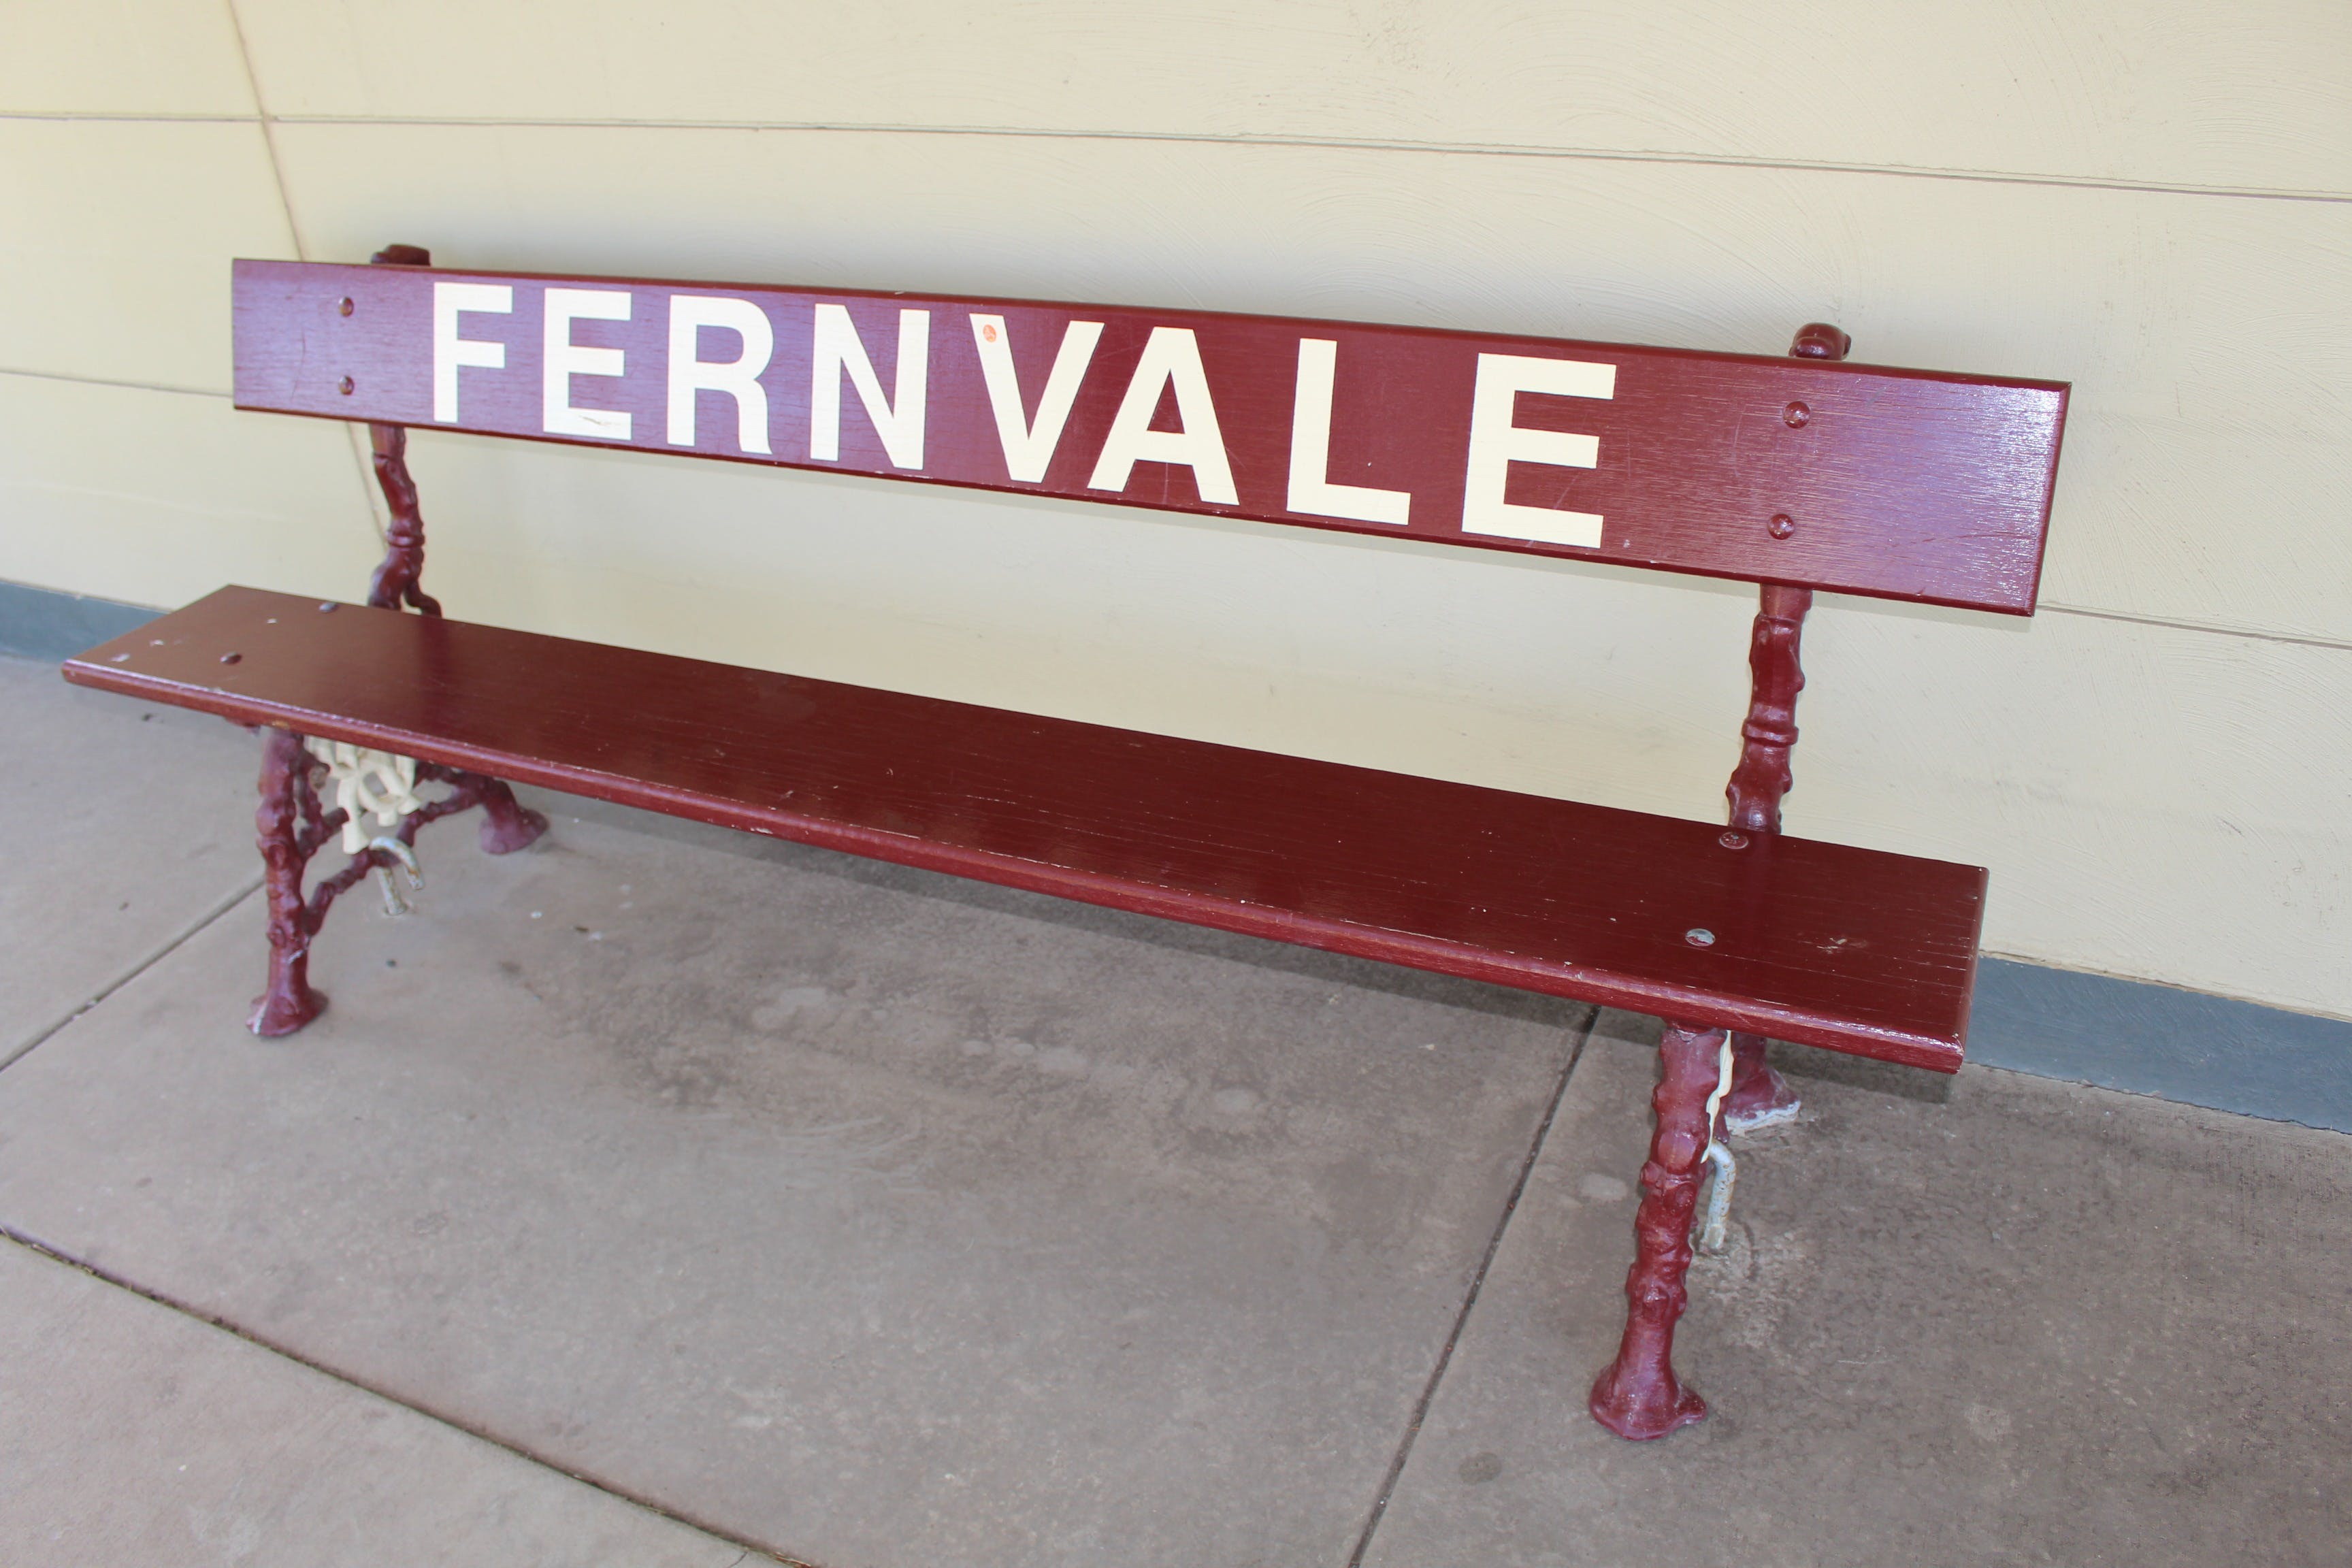 Fernvale - Accommodation Kalgoorlie